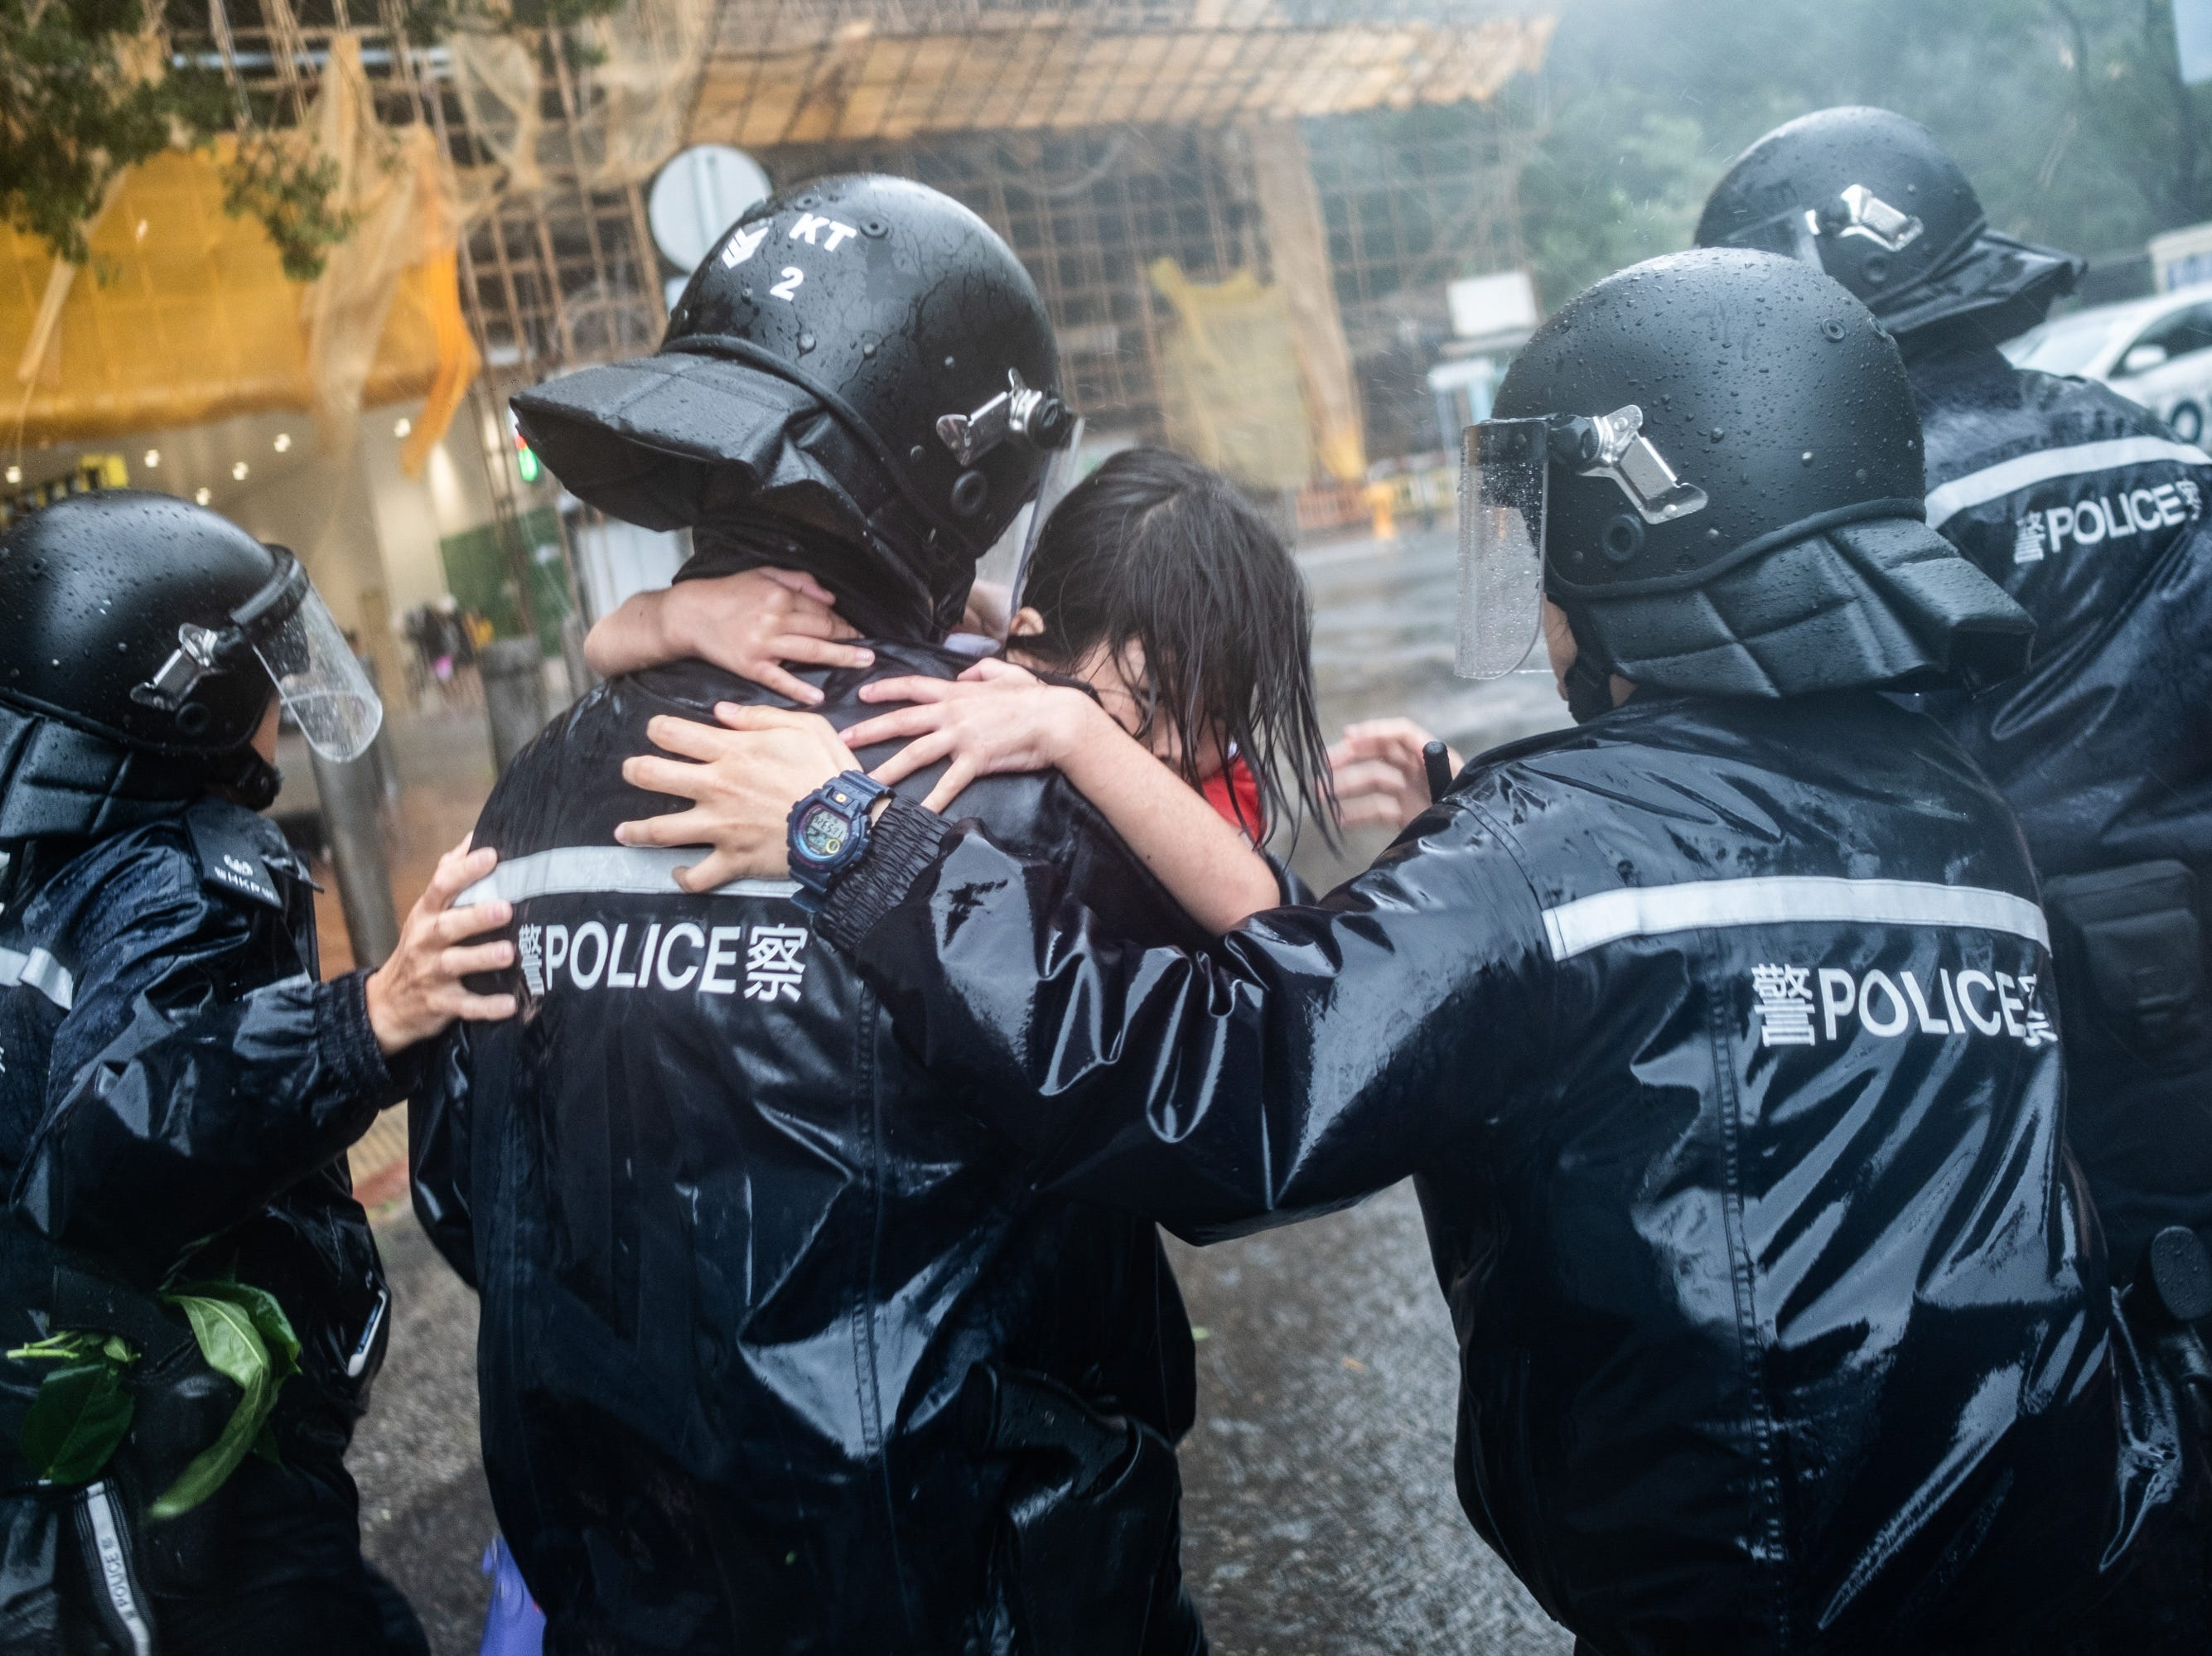 Police officers carry a girl out of a collapsed school on September 16, 2018 in Hong Kong, Hong Kong. City officials raised the storm alert to T10, it's highest level, as Typhoon Mangkhut landed on Hong Kong. The strongest tropical storm of the season so far, with winds as fast as 125 miles per hour, Mangkhut has reportedly killed at least 25 people in the Philippines as it continues it's path towards southern China.